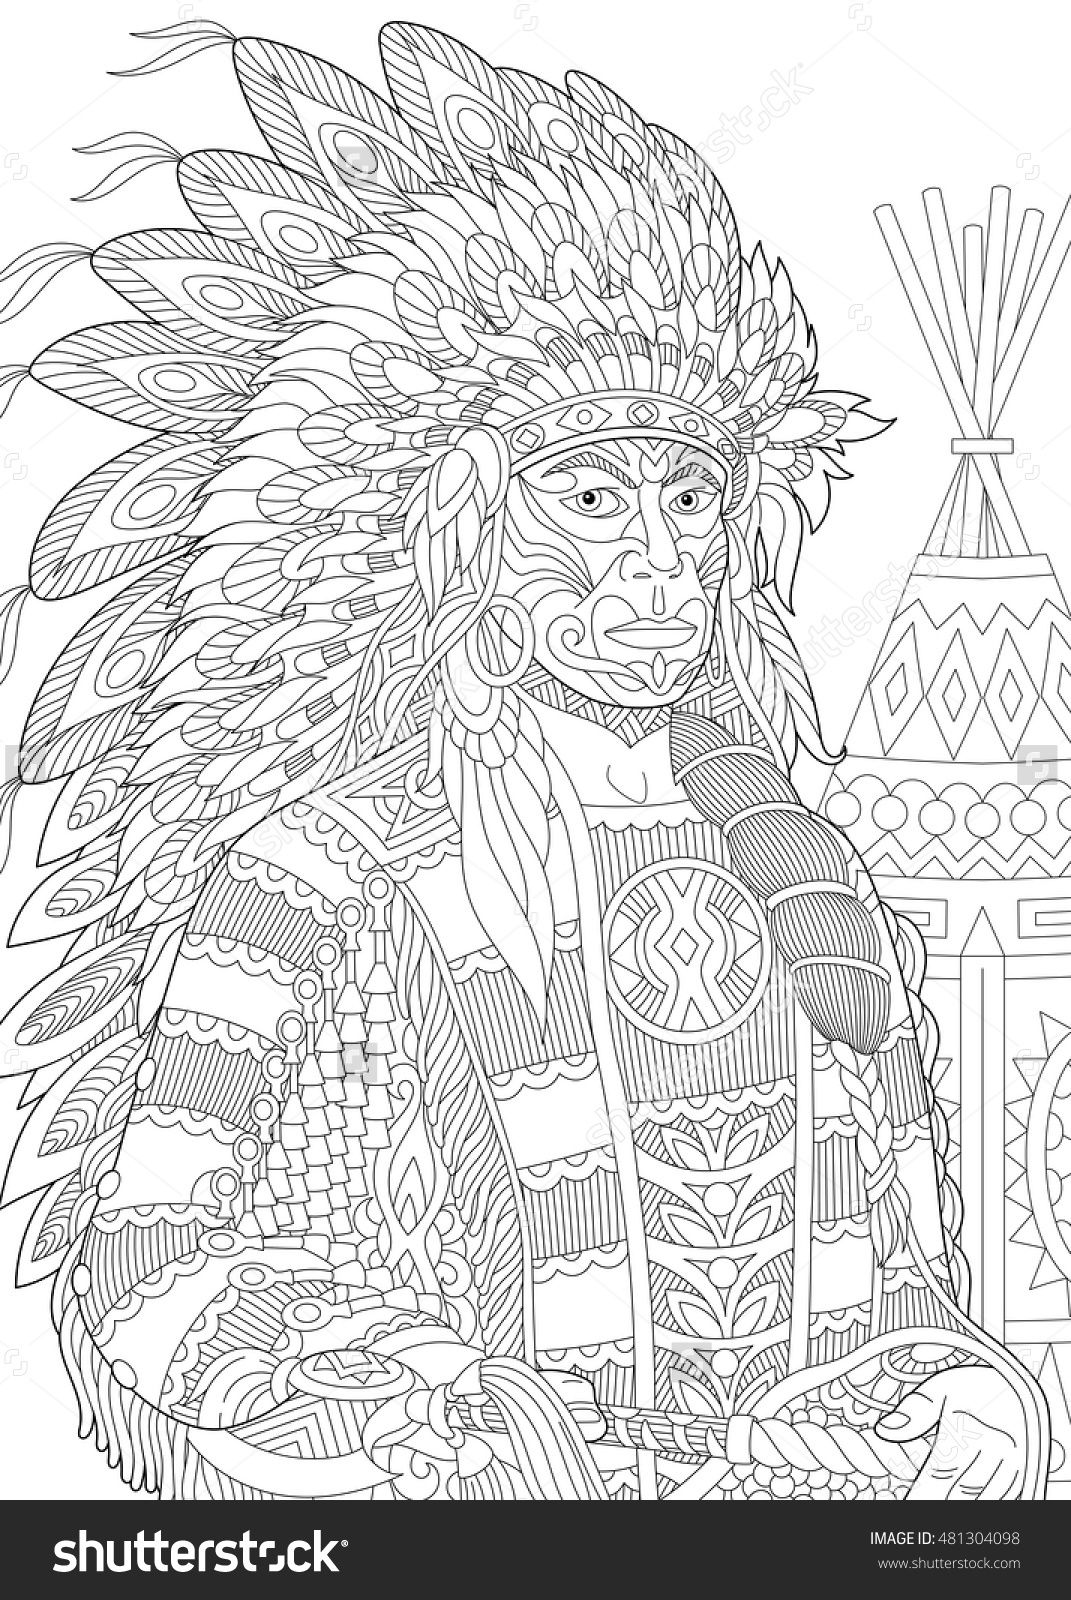 Red Indian Chief Redskin Man Wearing Traditional Headdress Adult Coloring Page Zentangle 481304098